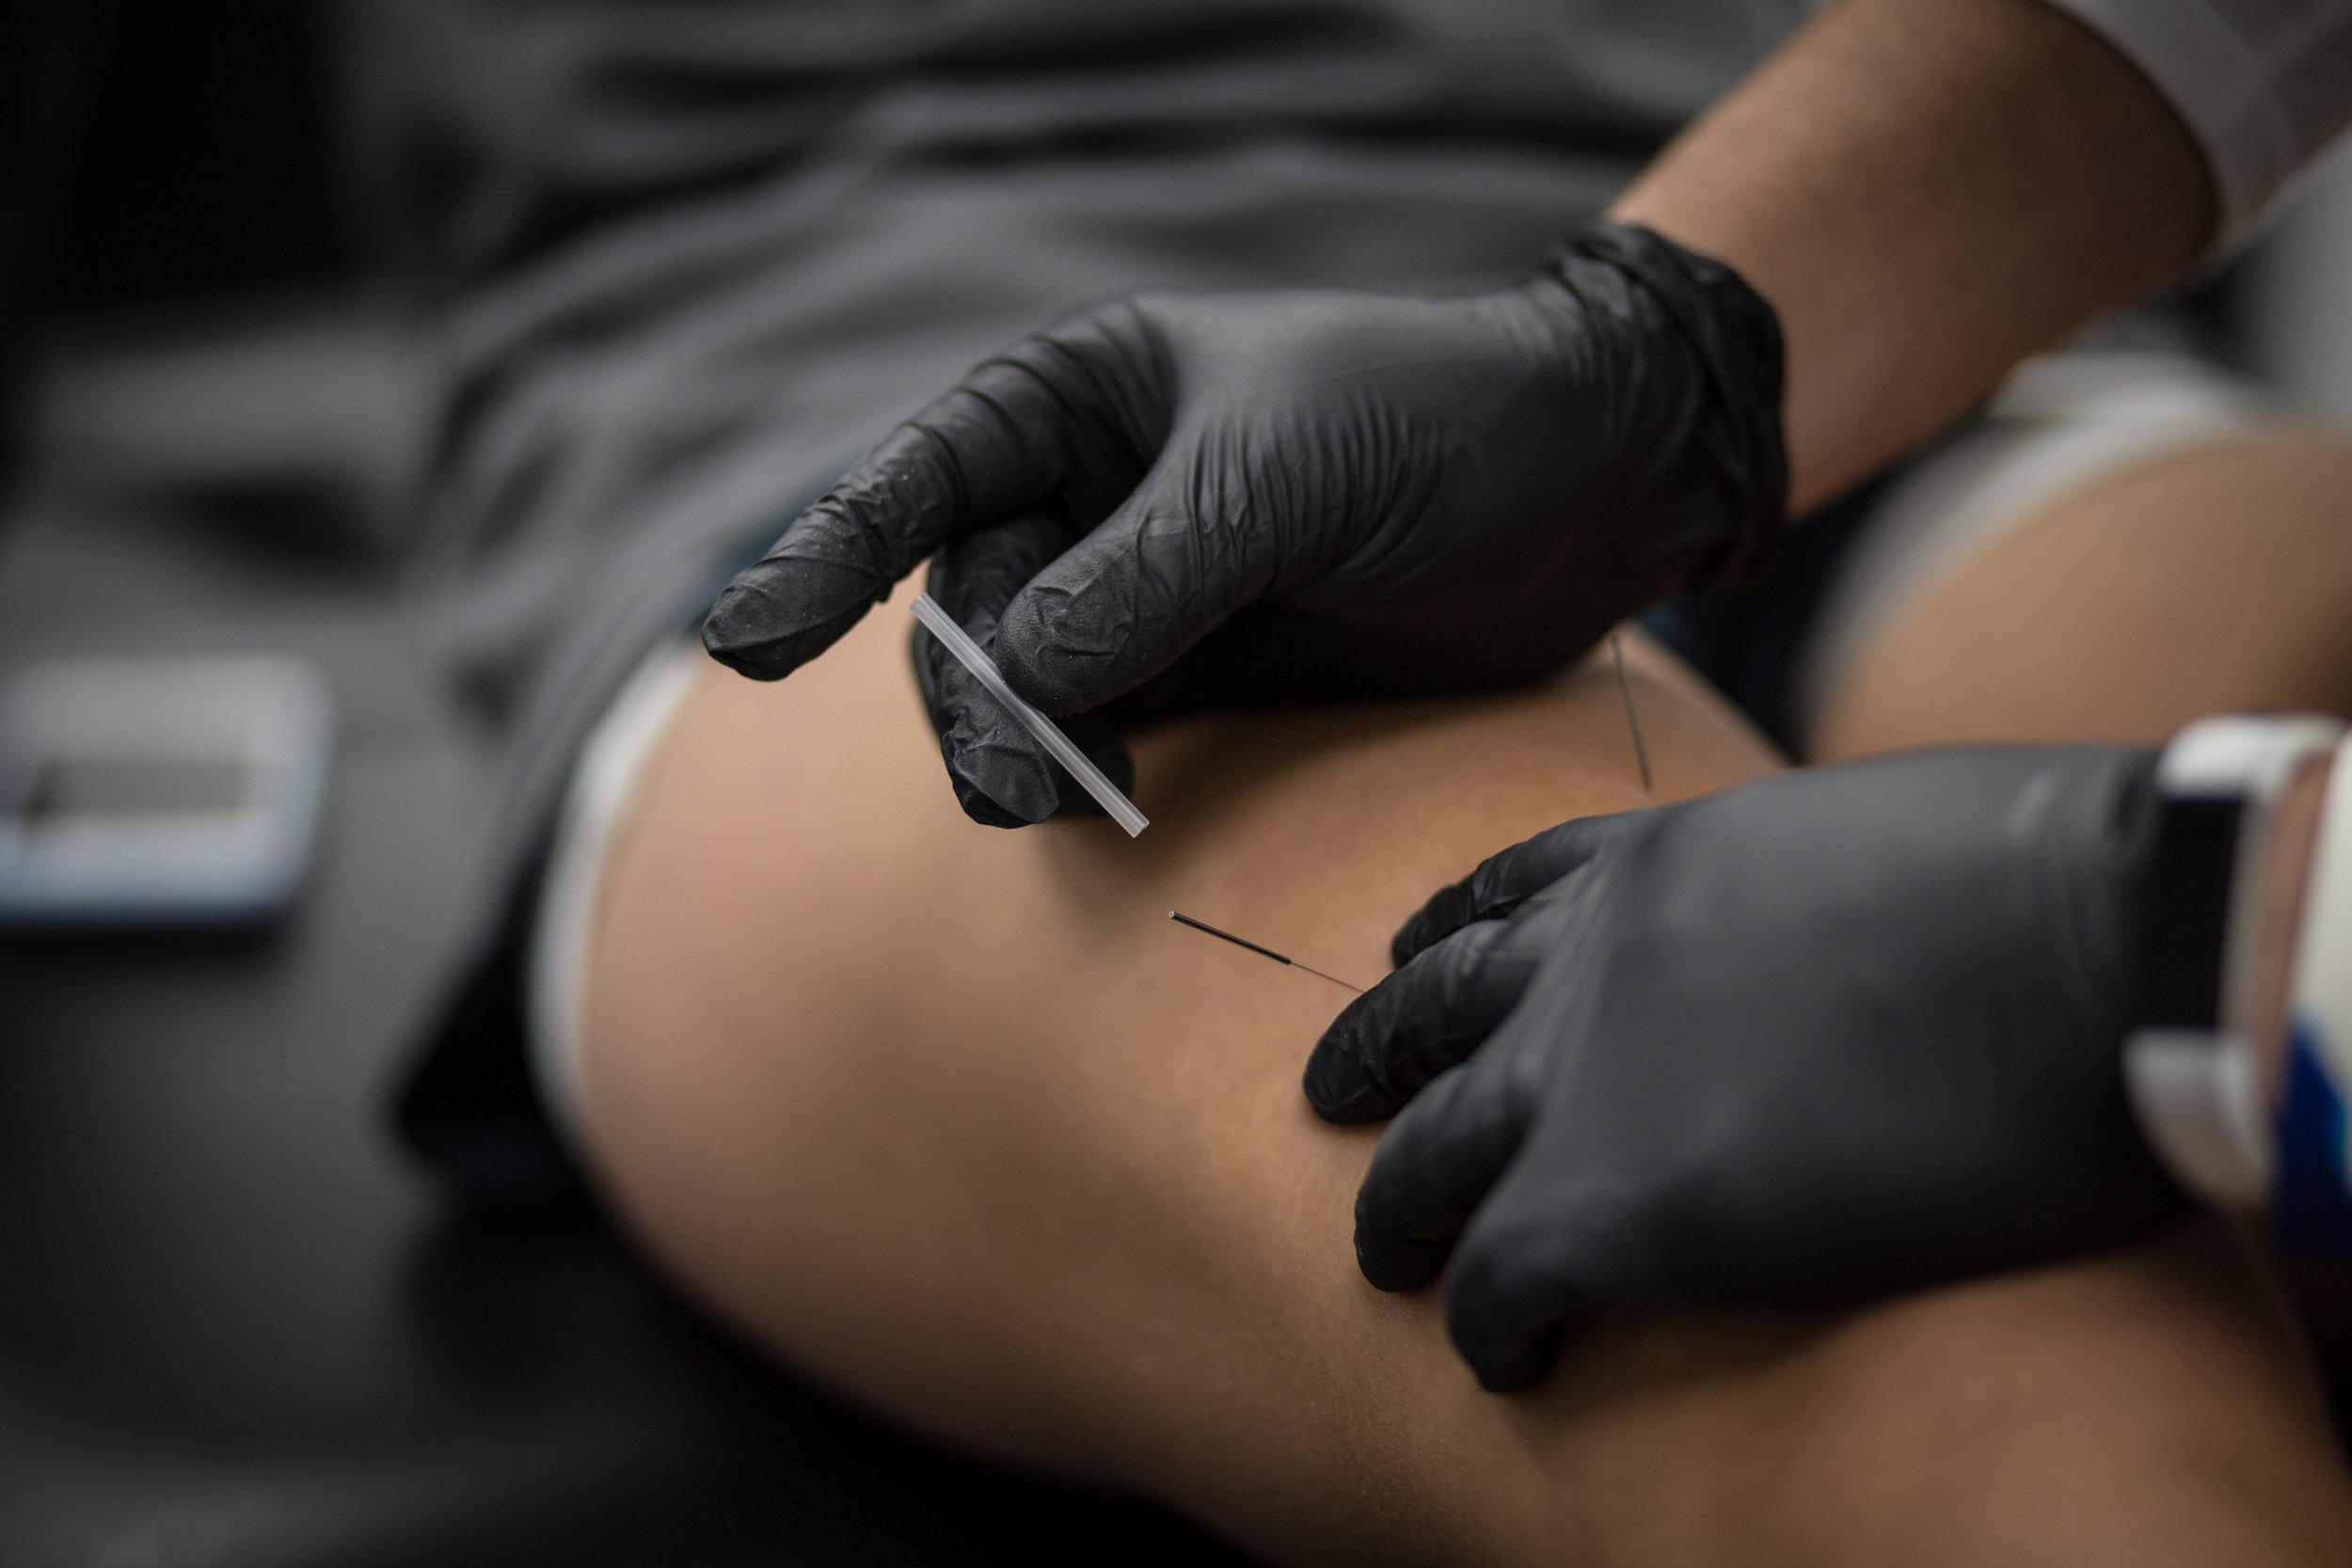 Baltimore sports physical therapy,Howard county best sports physical therapy, dry needling,Elkridge physical therapy, Columbia physical therapy, dry needle, acupuncture Howard county,